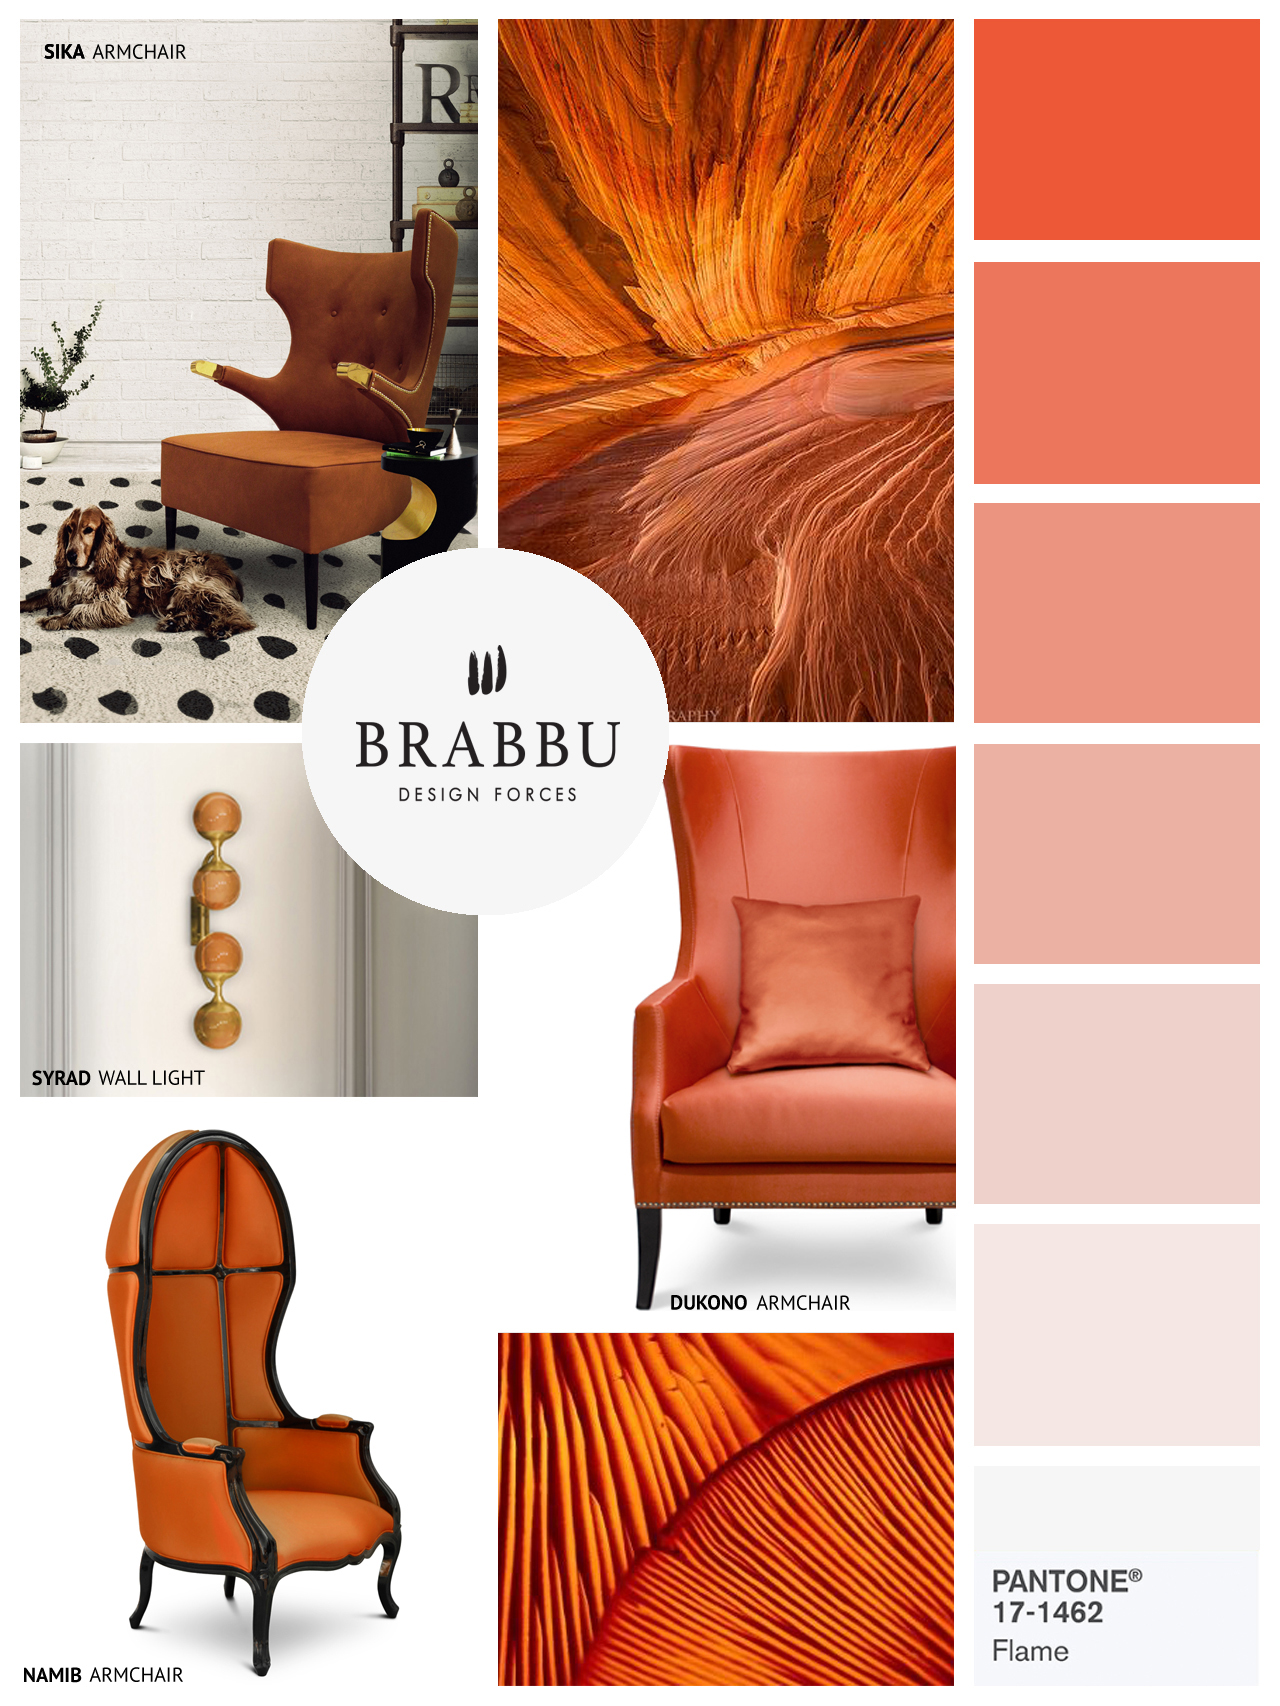 10 Amazing Colorful Chairs for A Chic Home 10 Amazing Colorful Chairs for A Chic Home moodboard by brabbu 8 HR